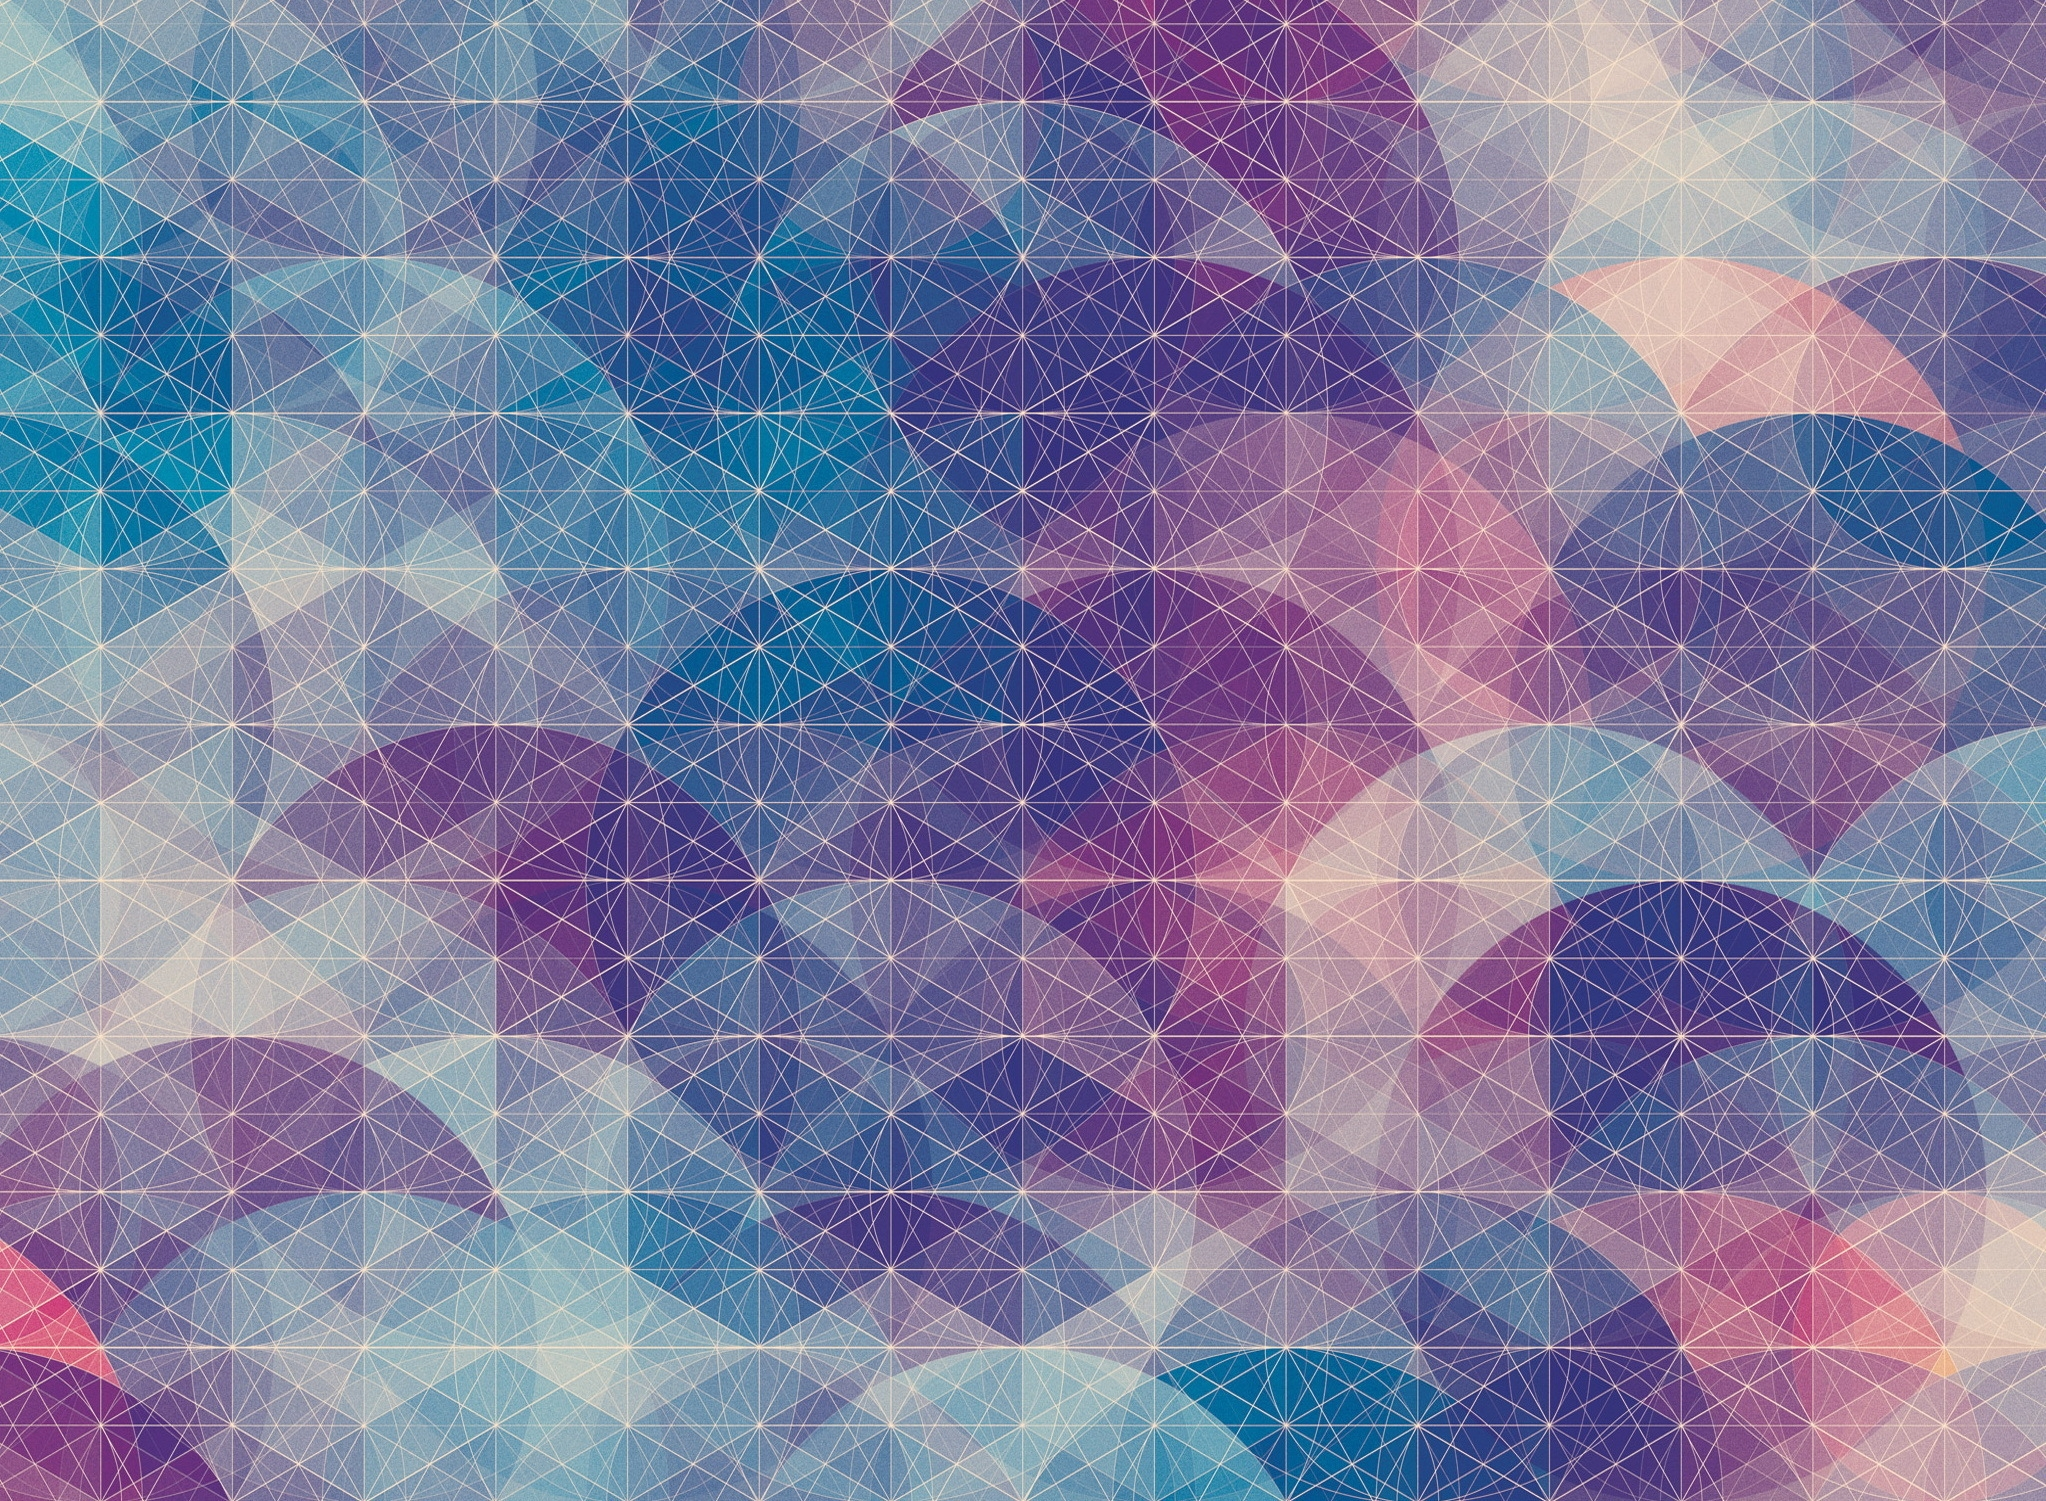 69686 download wallpaper Abstract, Circles, Background, Grid, Stains, Spots screensavers and pictures for free